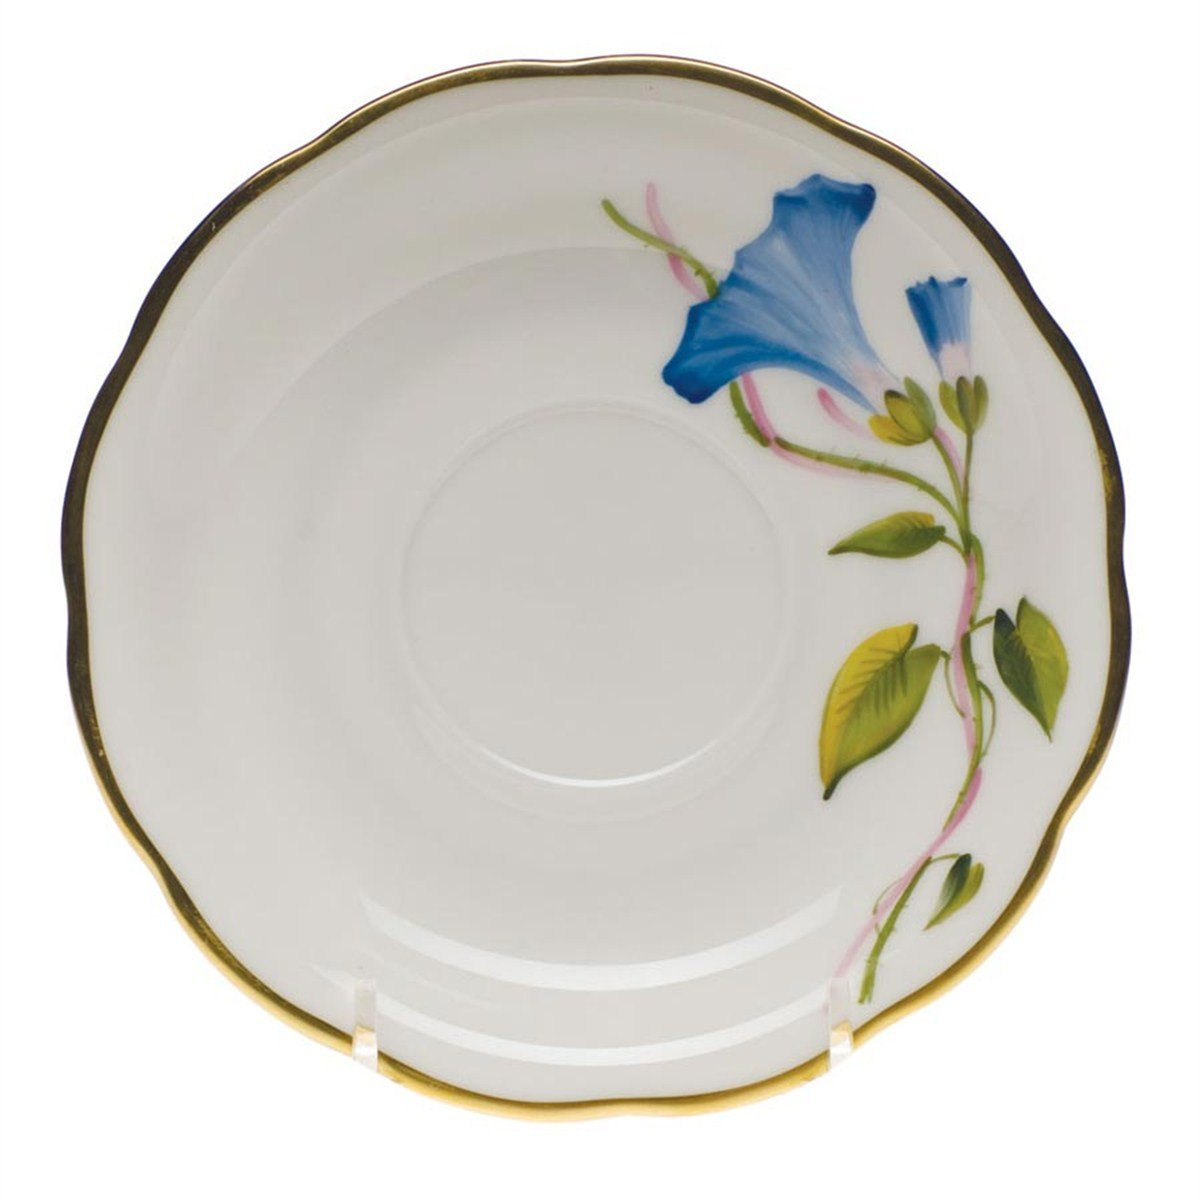 Herend American Wildflowers Morning Glory Tea Saucer FLAMG-20734-1-00